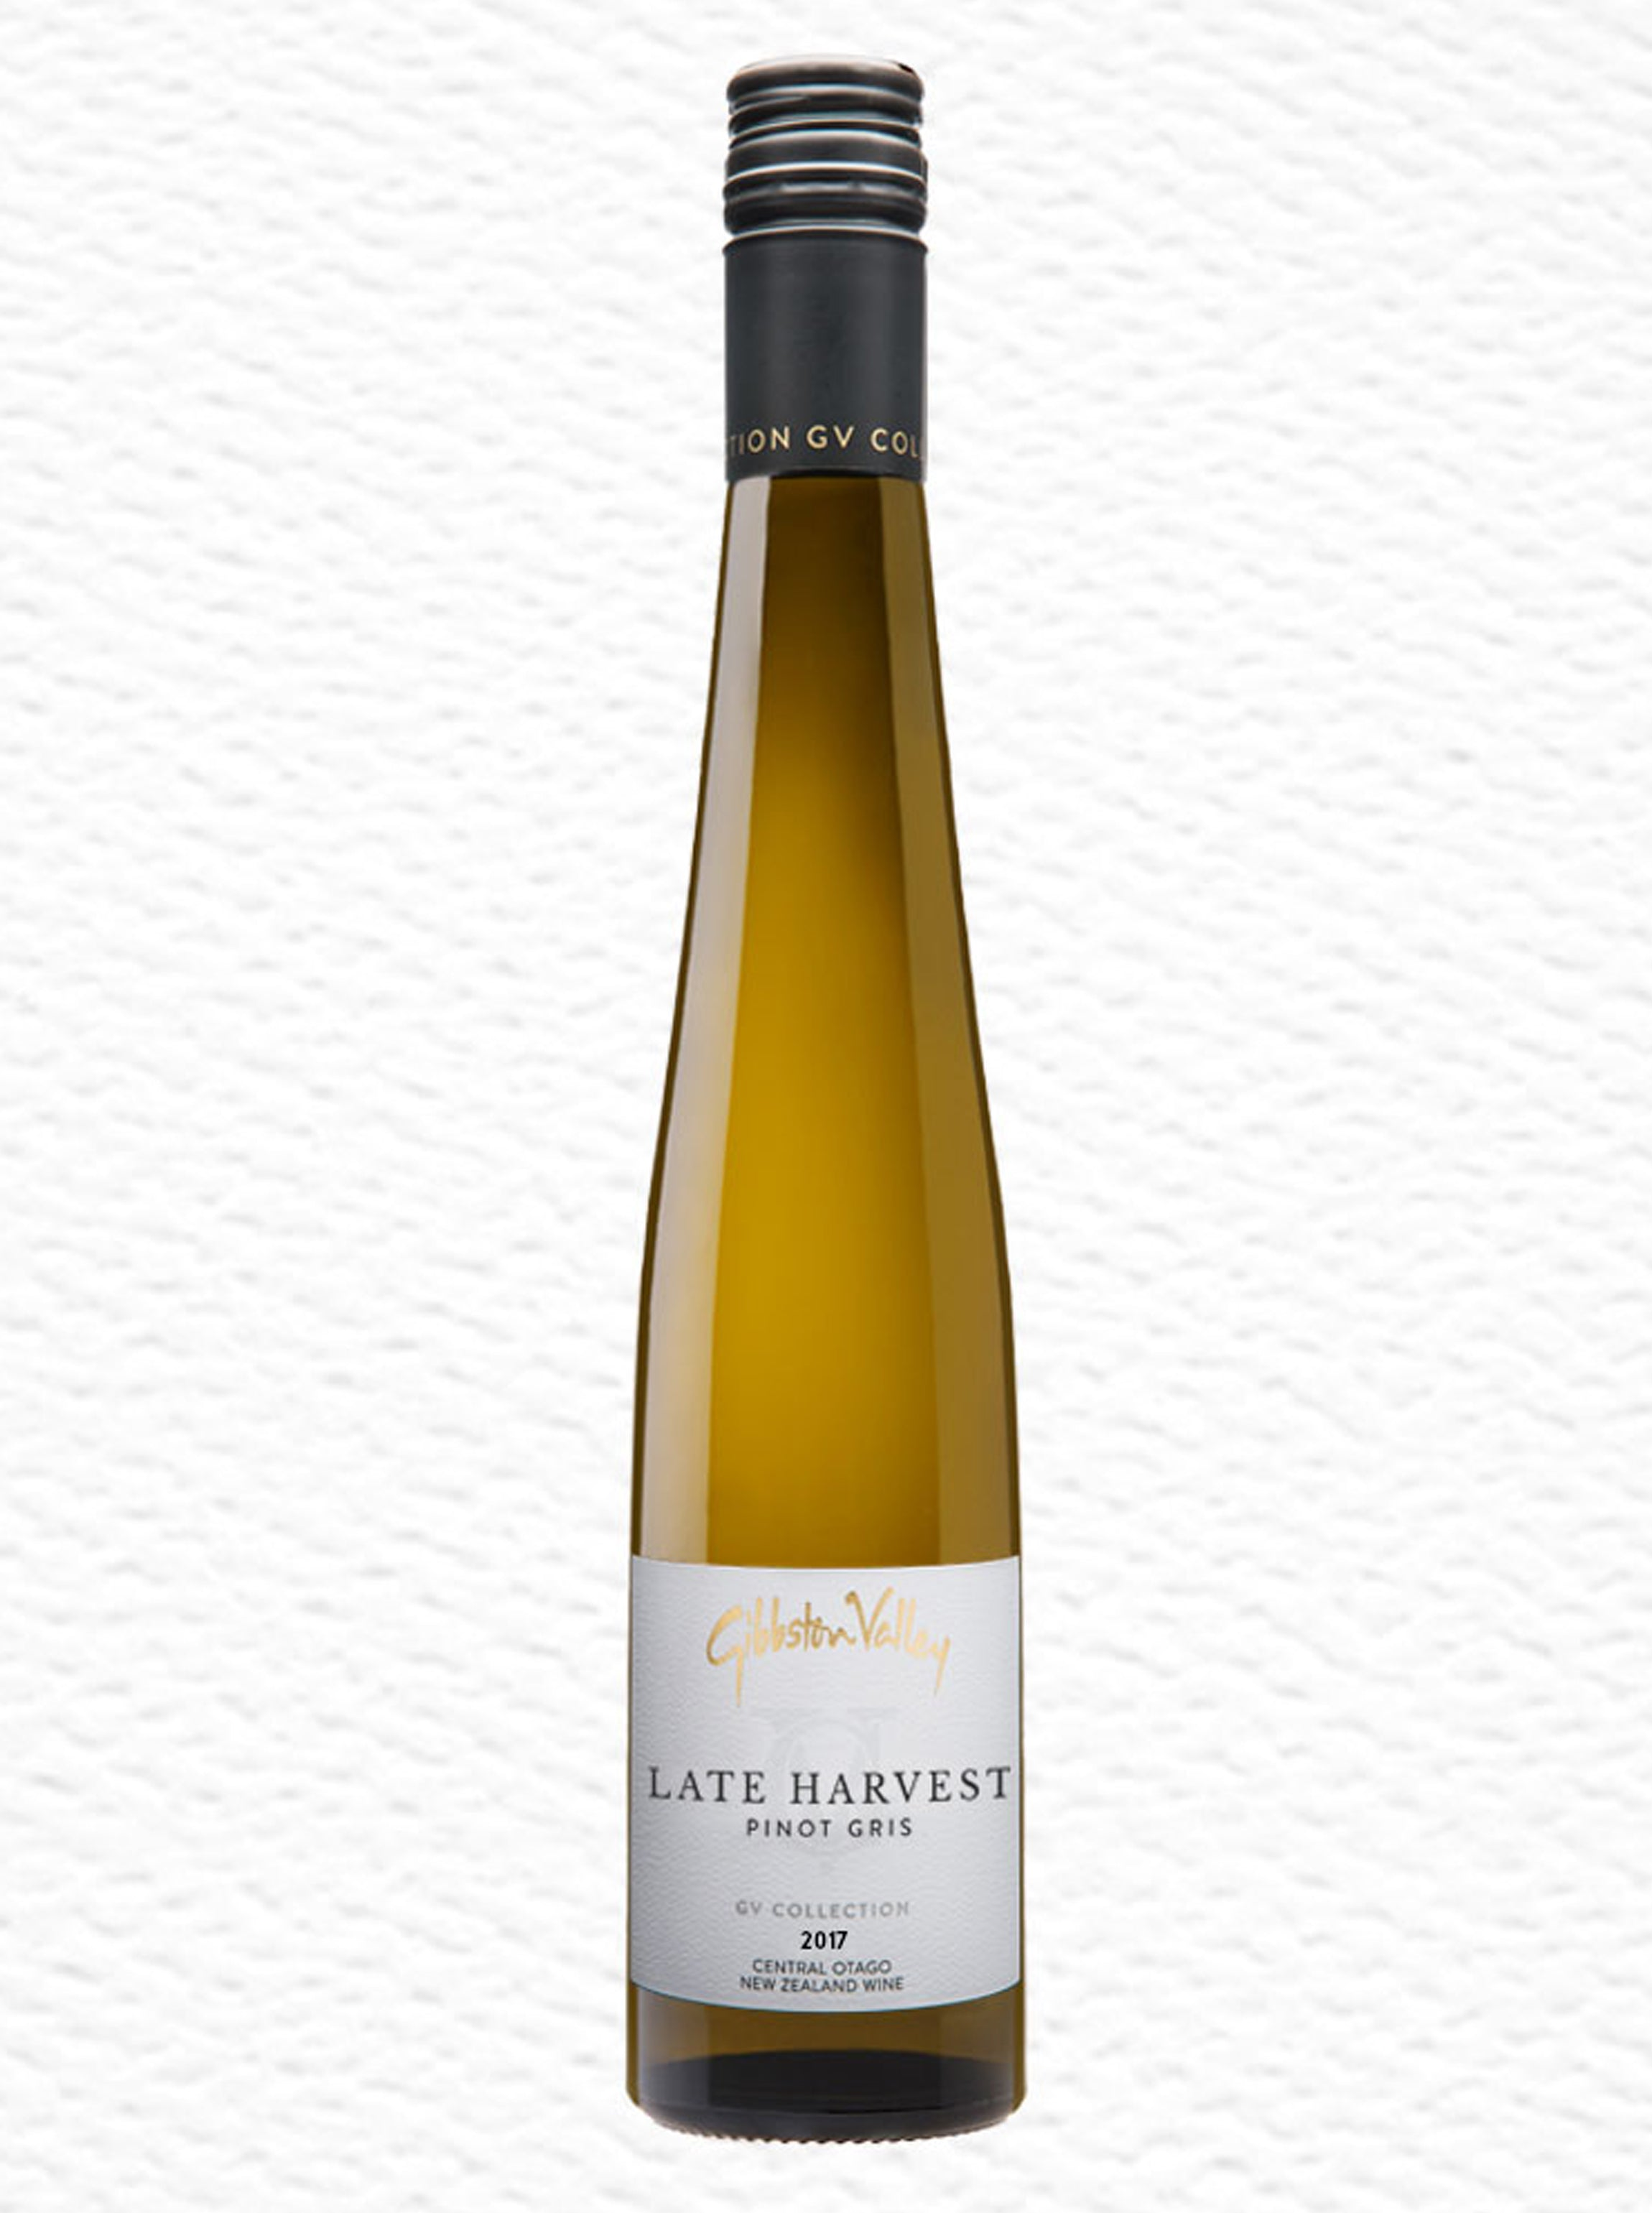 Gibbston Valley Late Harvest, Late Harvest Pinot Gris, Dessert Wine, Central Otago Wine, Central Otago Dessert Wine, New Zealand Wine, Sweet Wine, New Zealand Wine Events, Auckland Wine Events, Winetopia, Auckland Restaurant Month, Online Wine Shop, New Zealand Wine Store